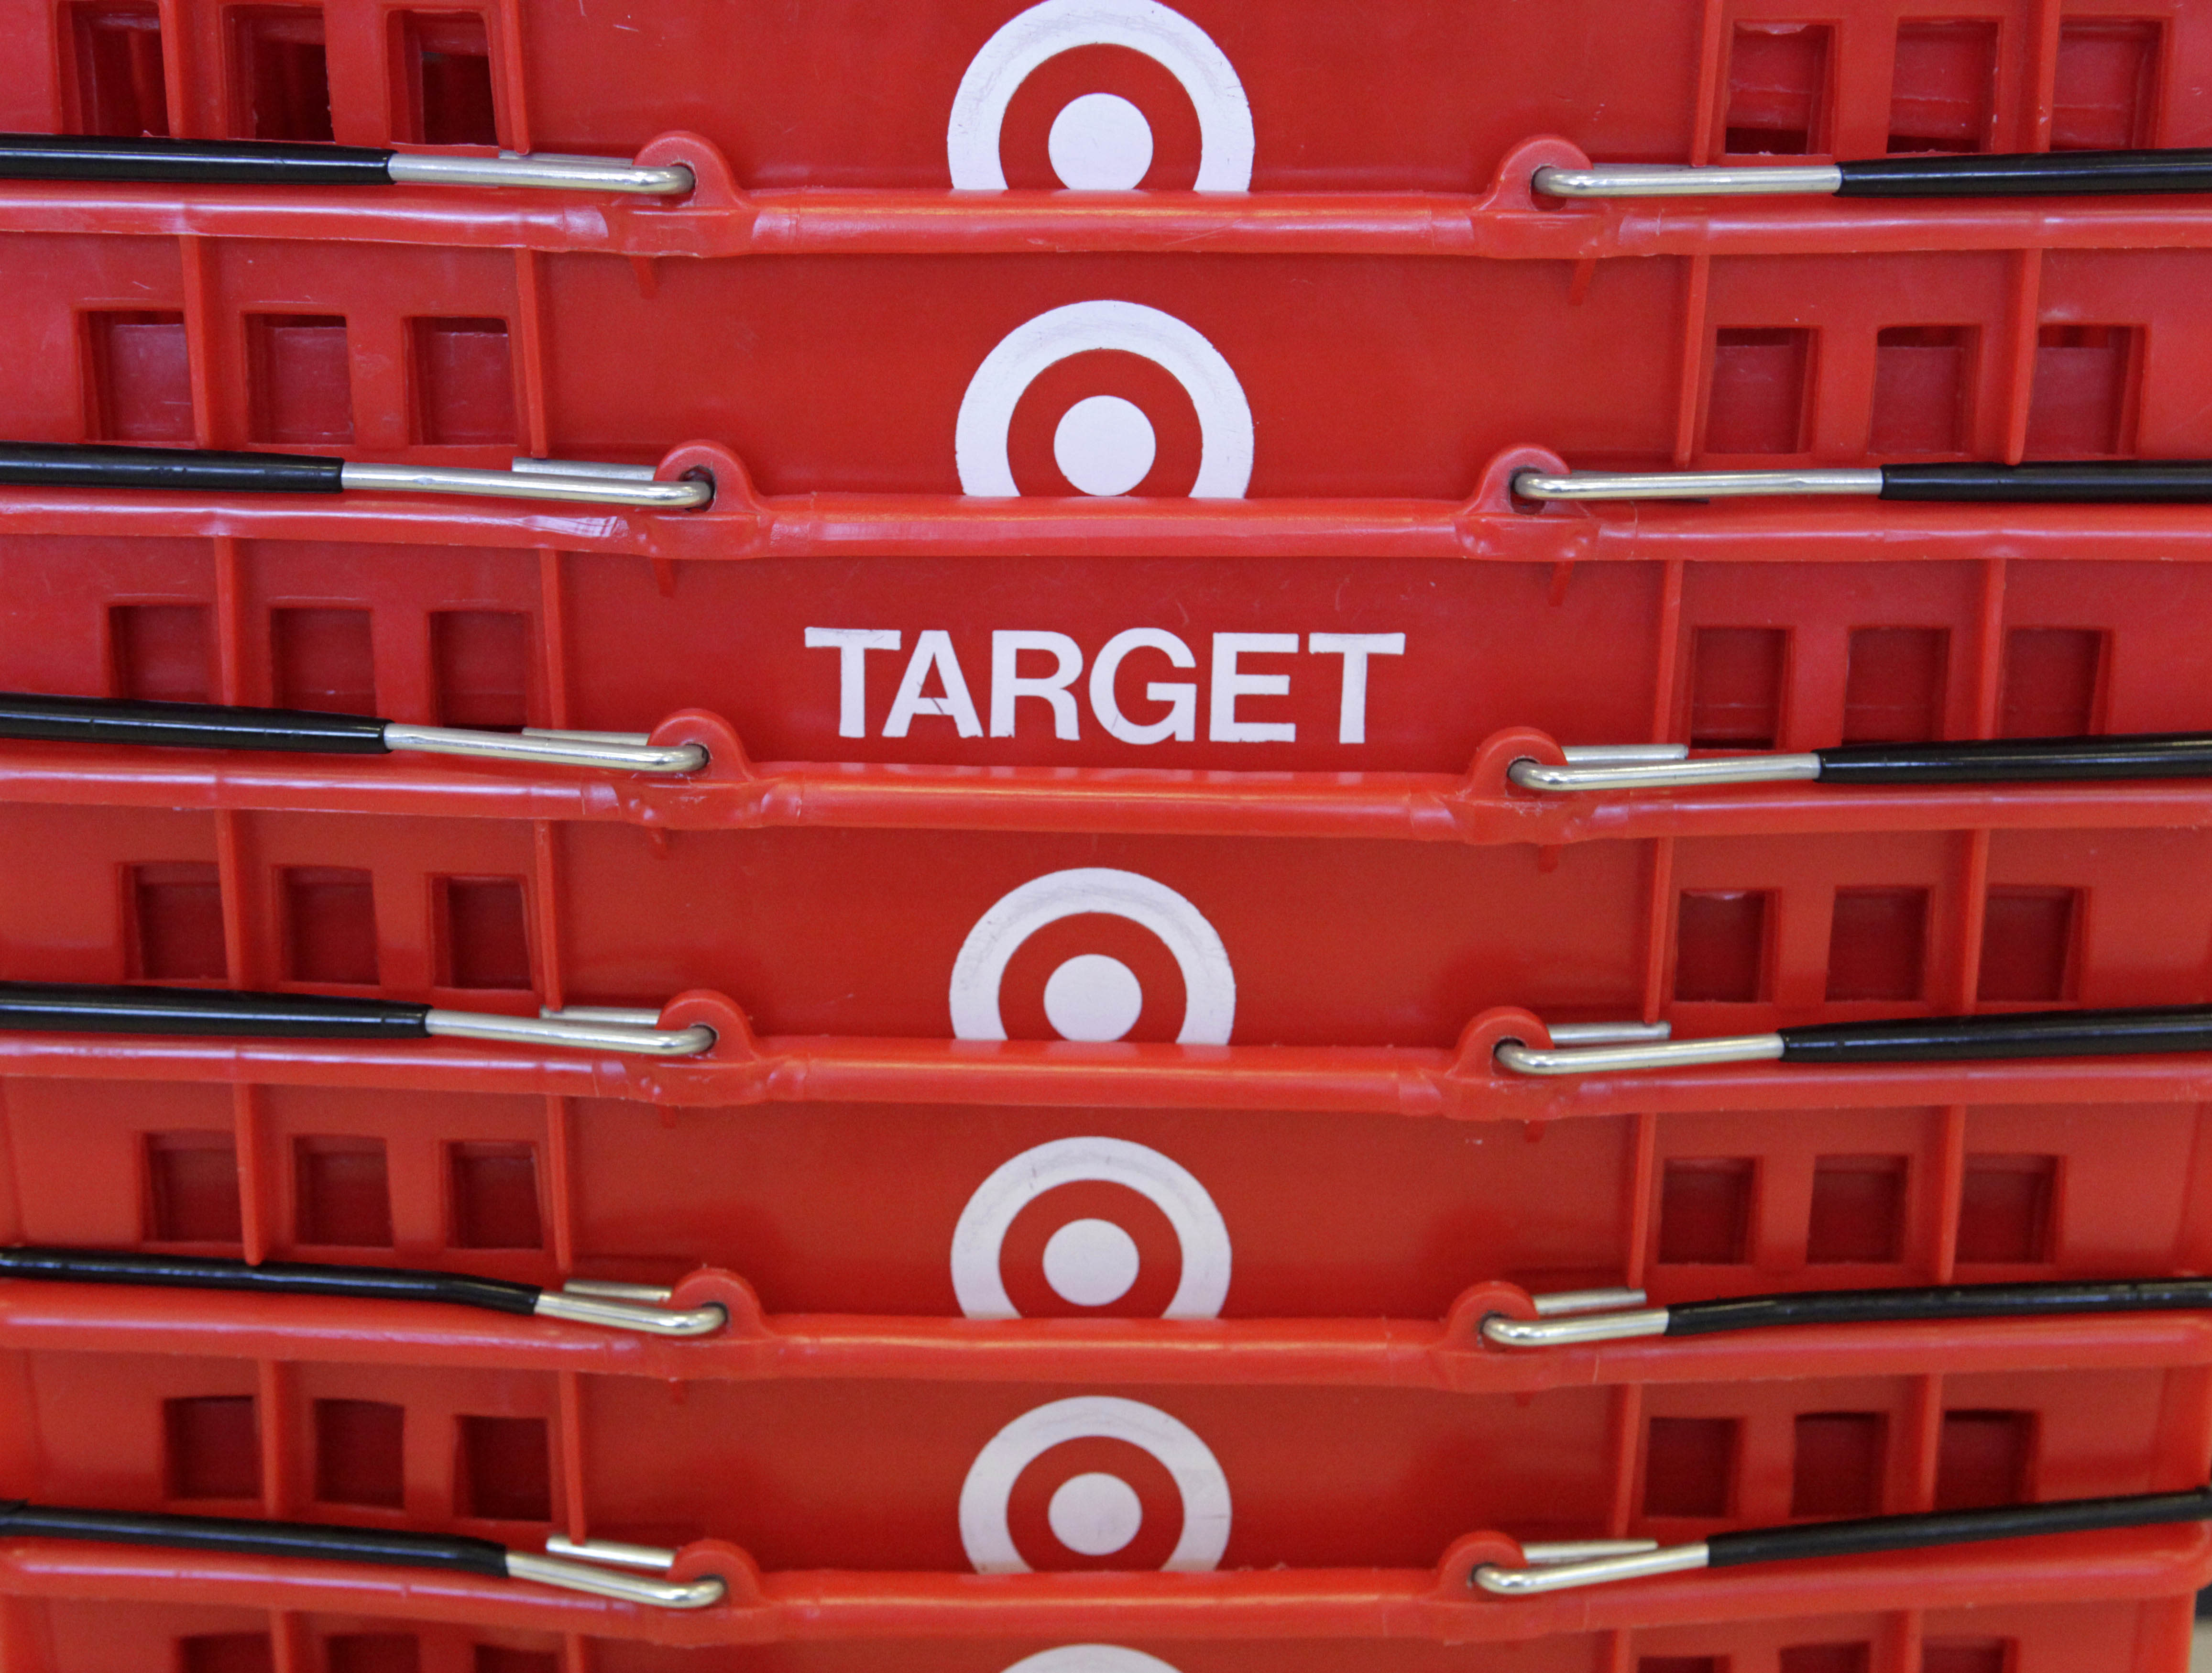 Target plans $2b in cost-cutting moves